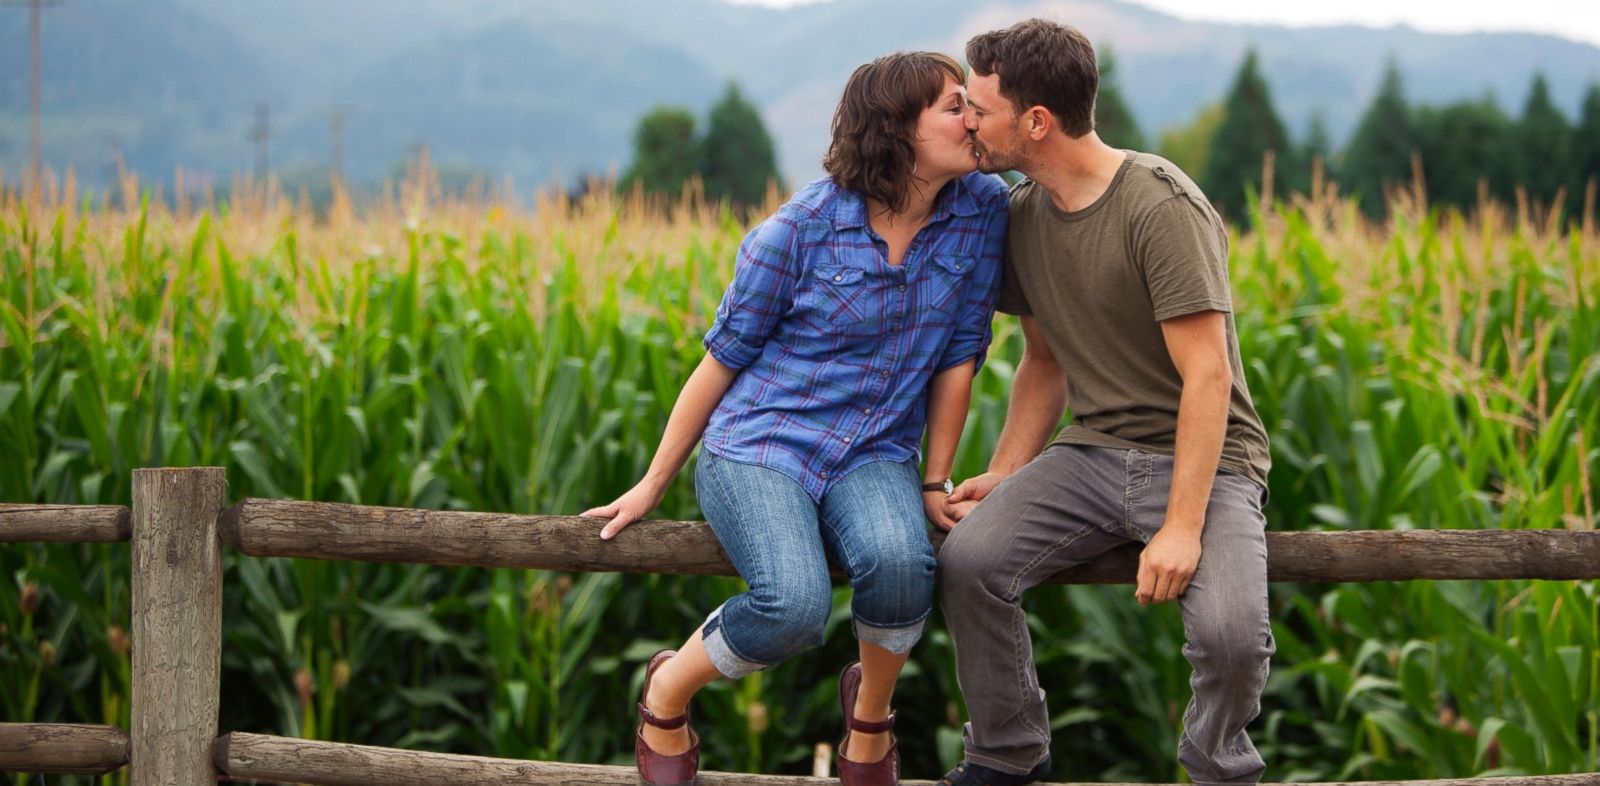 Farmers dating sites in usa